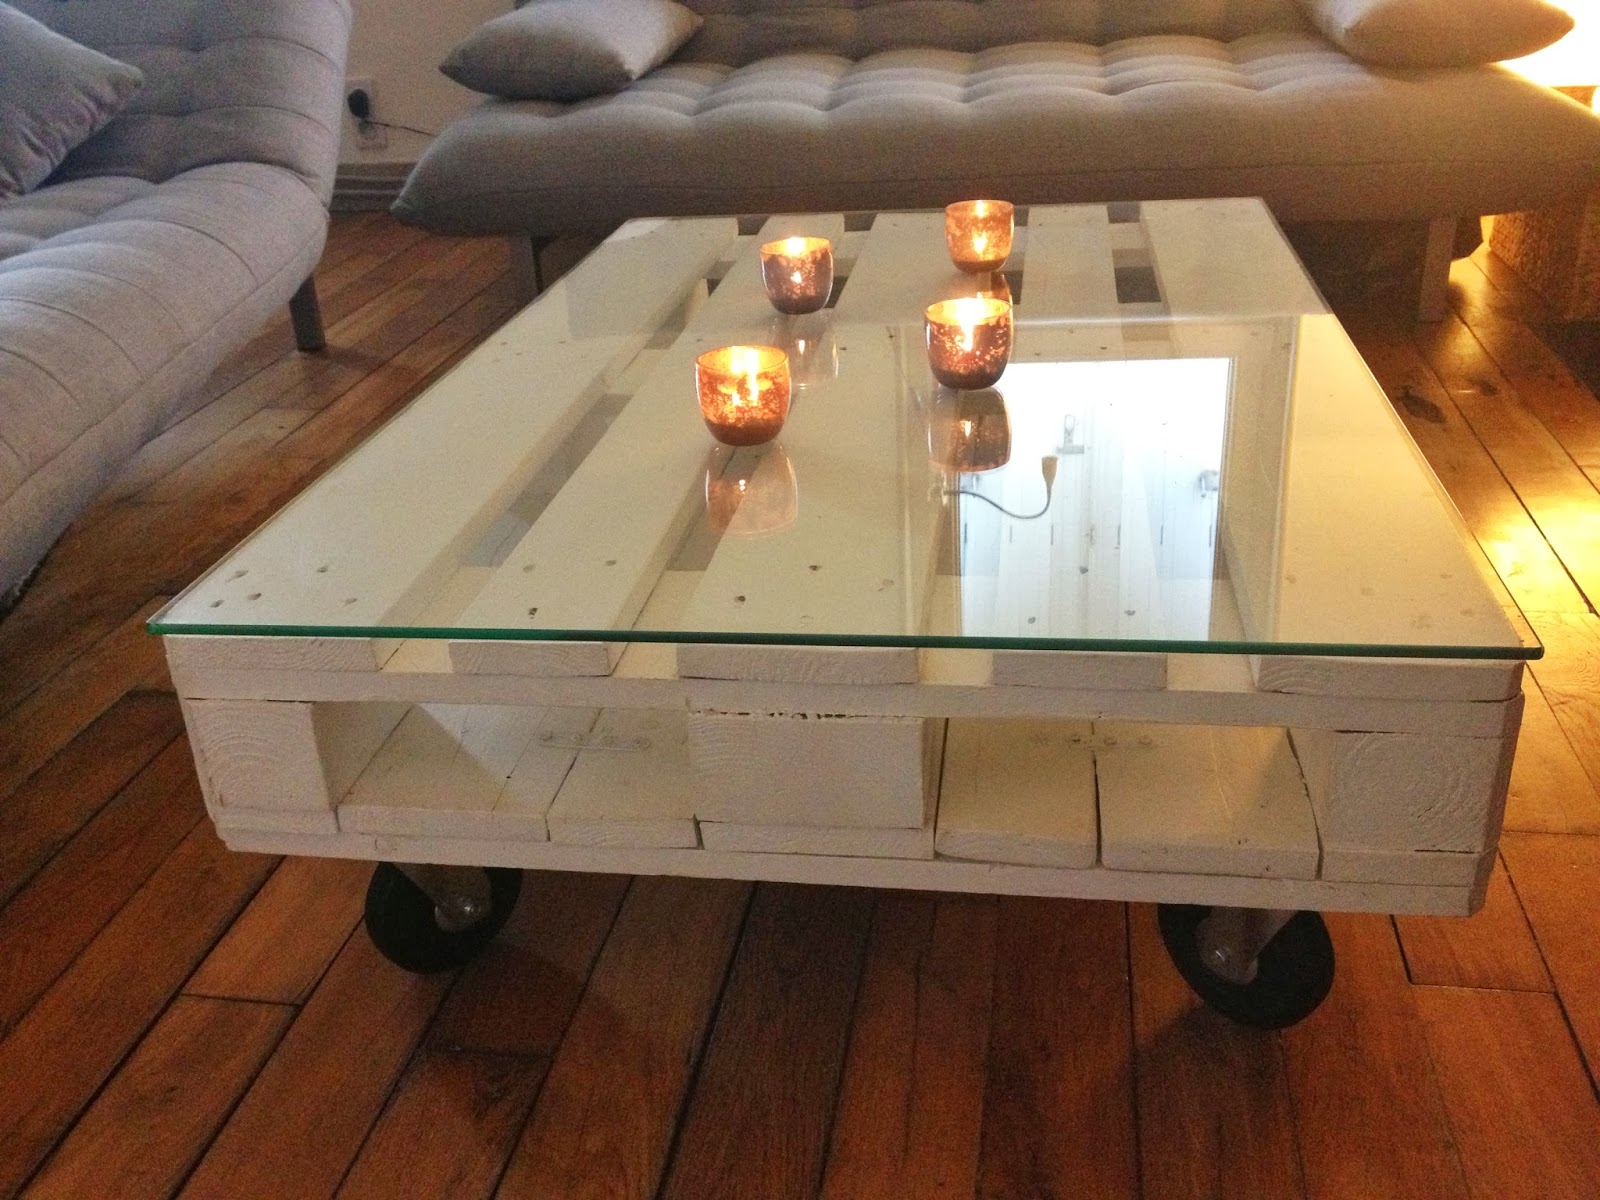 Diy une table basse en palette la clamartoise - Table salon en palette bois ...